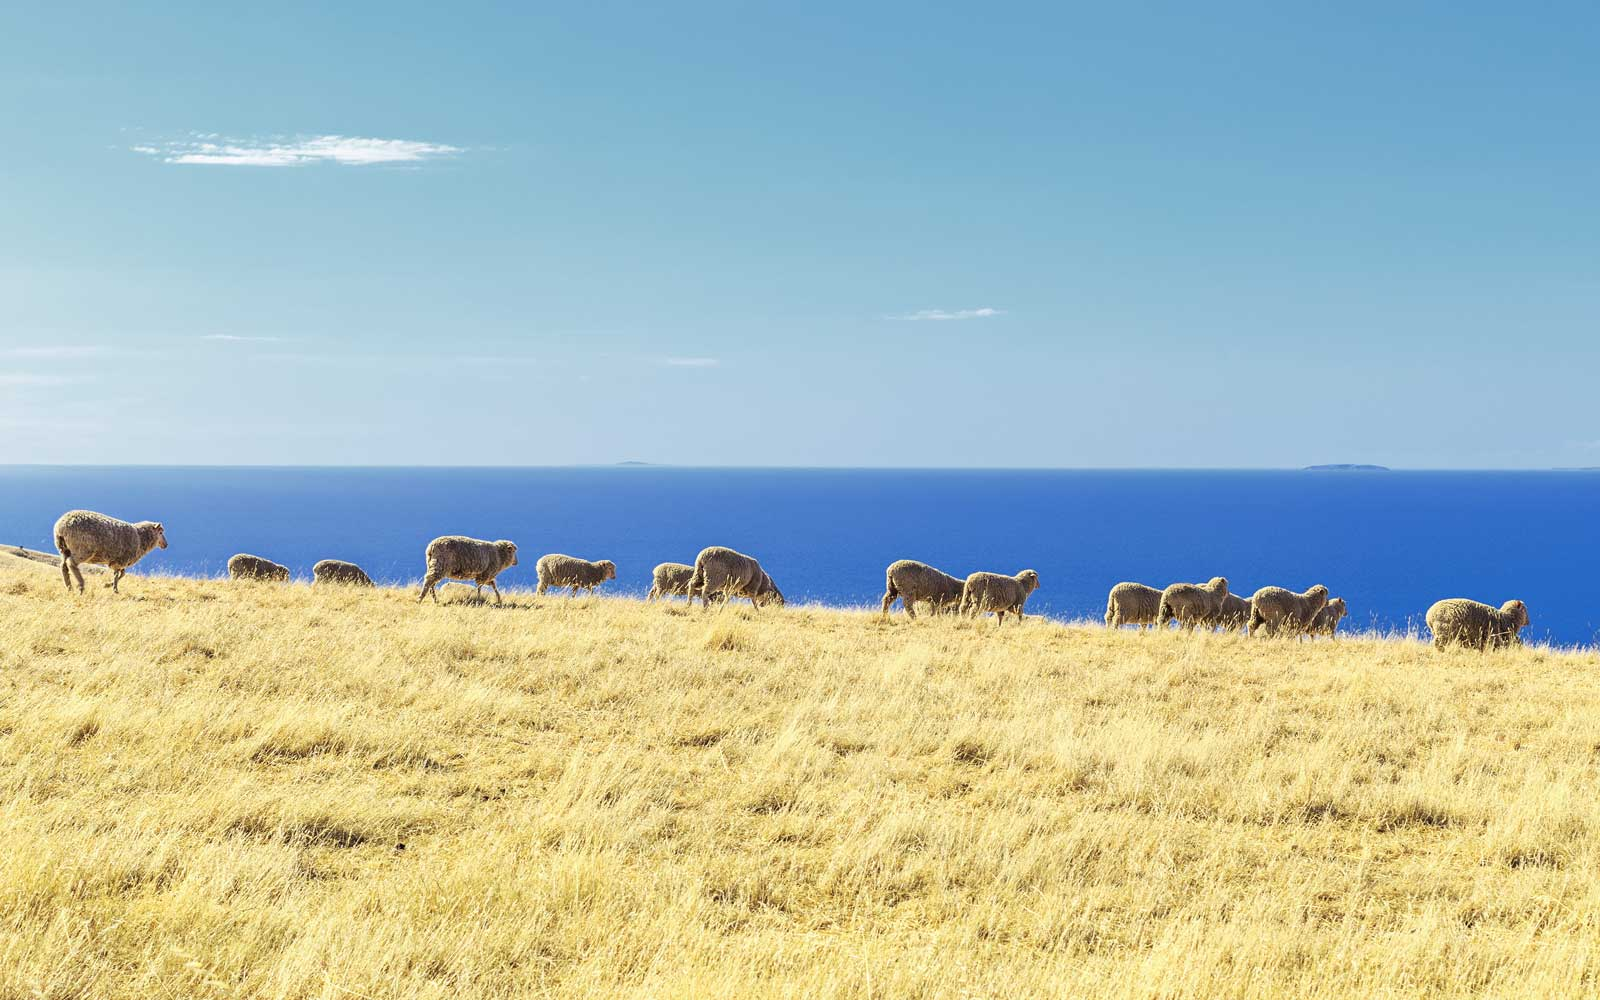 Sheep in a field, Kangaroo Island, Australia